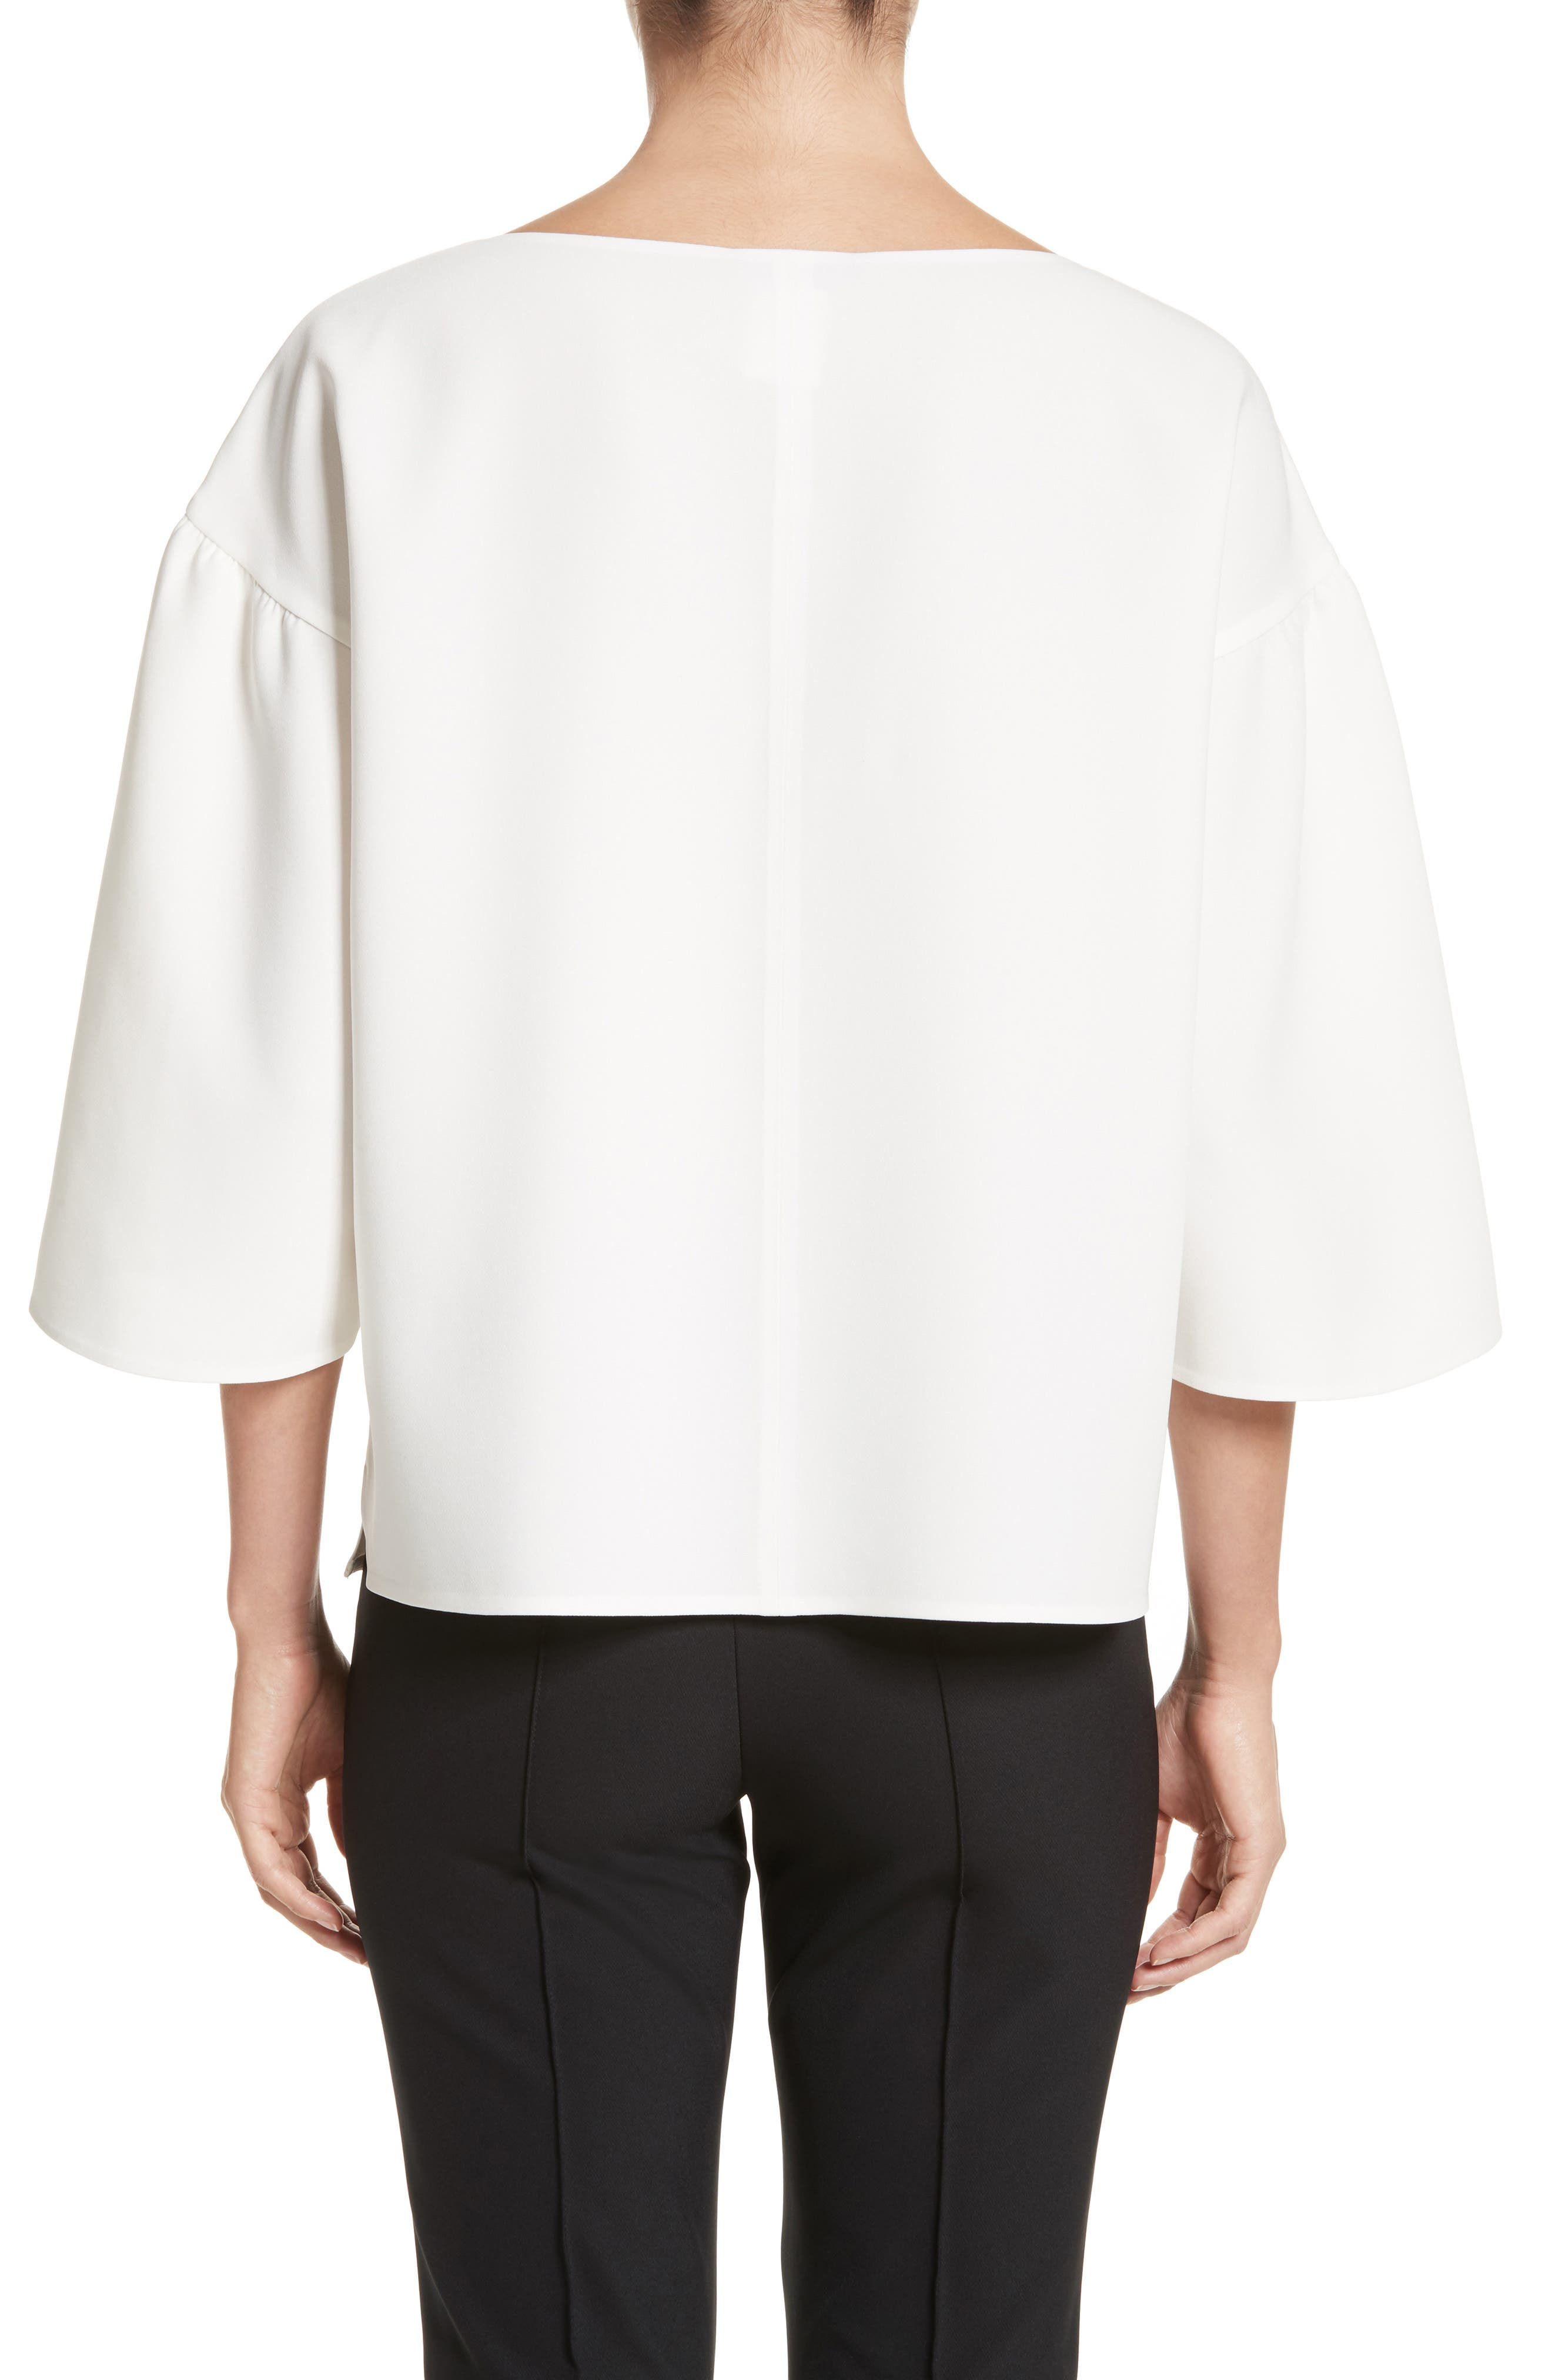 Gwendolyn Blouse,                             Alternate thumbnail 2, color,